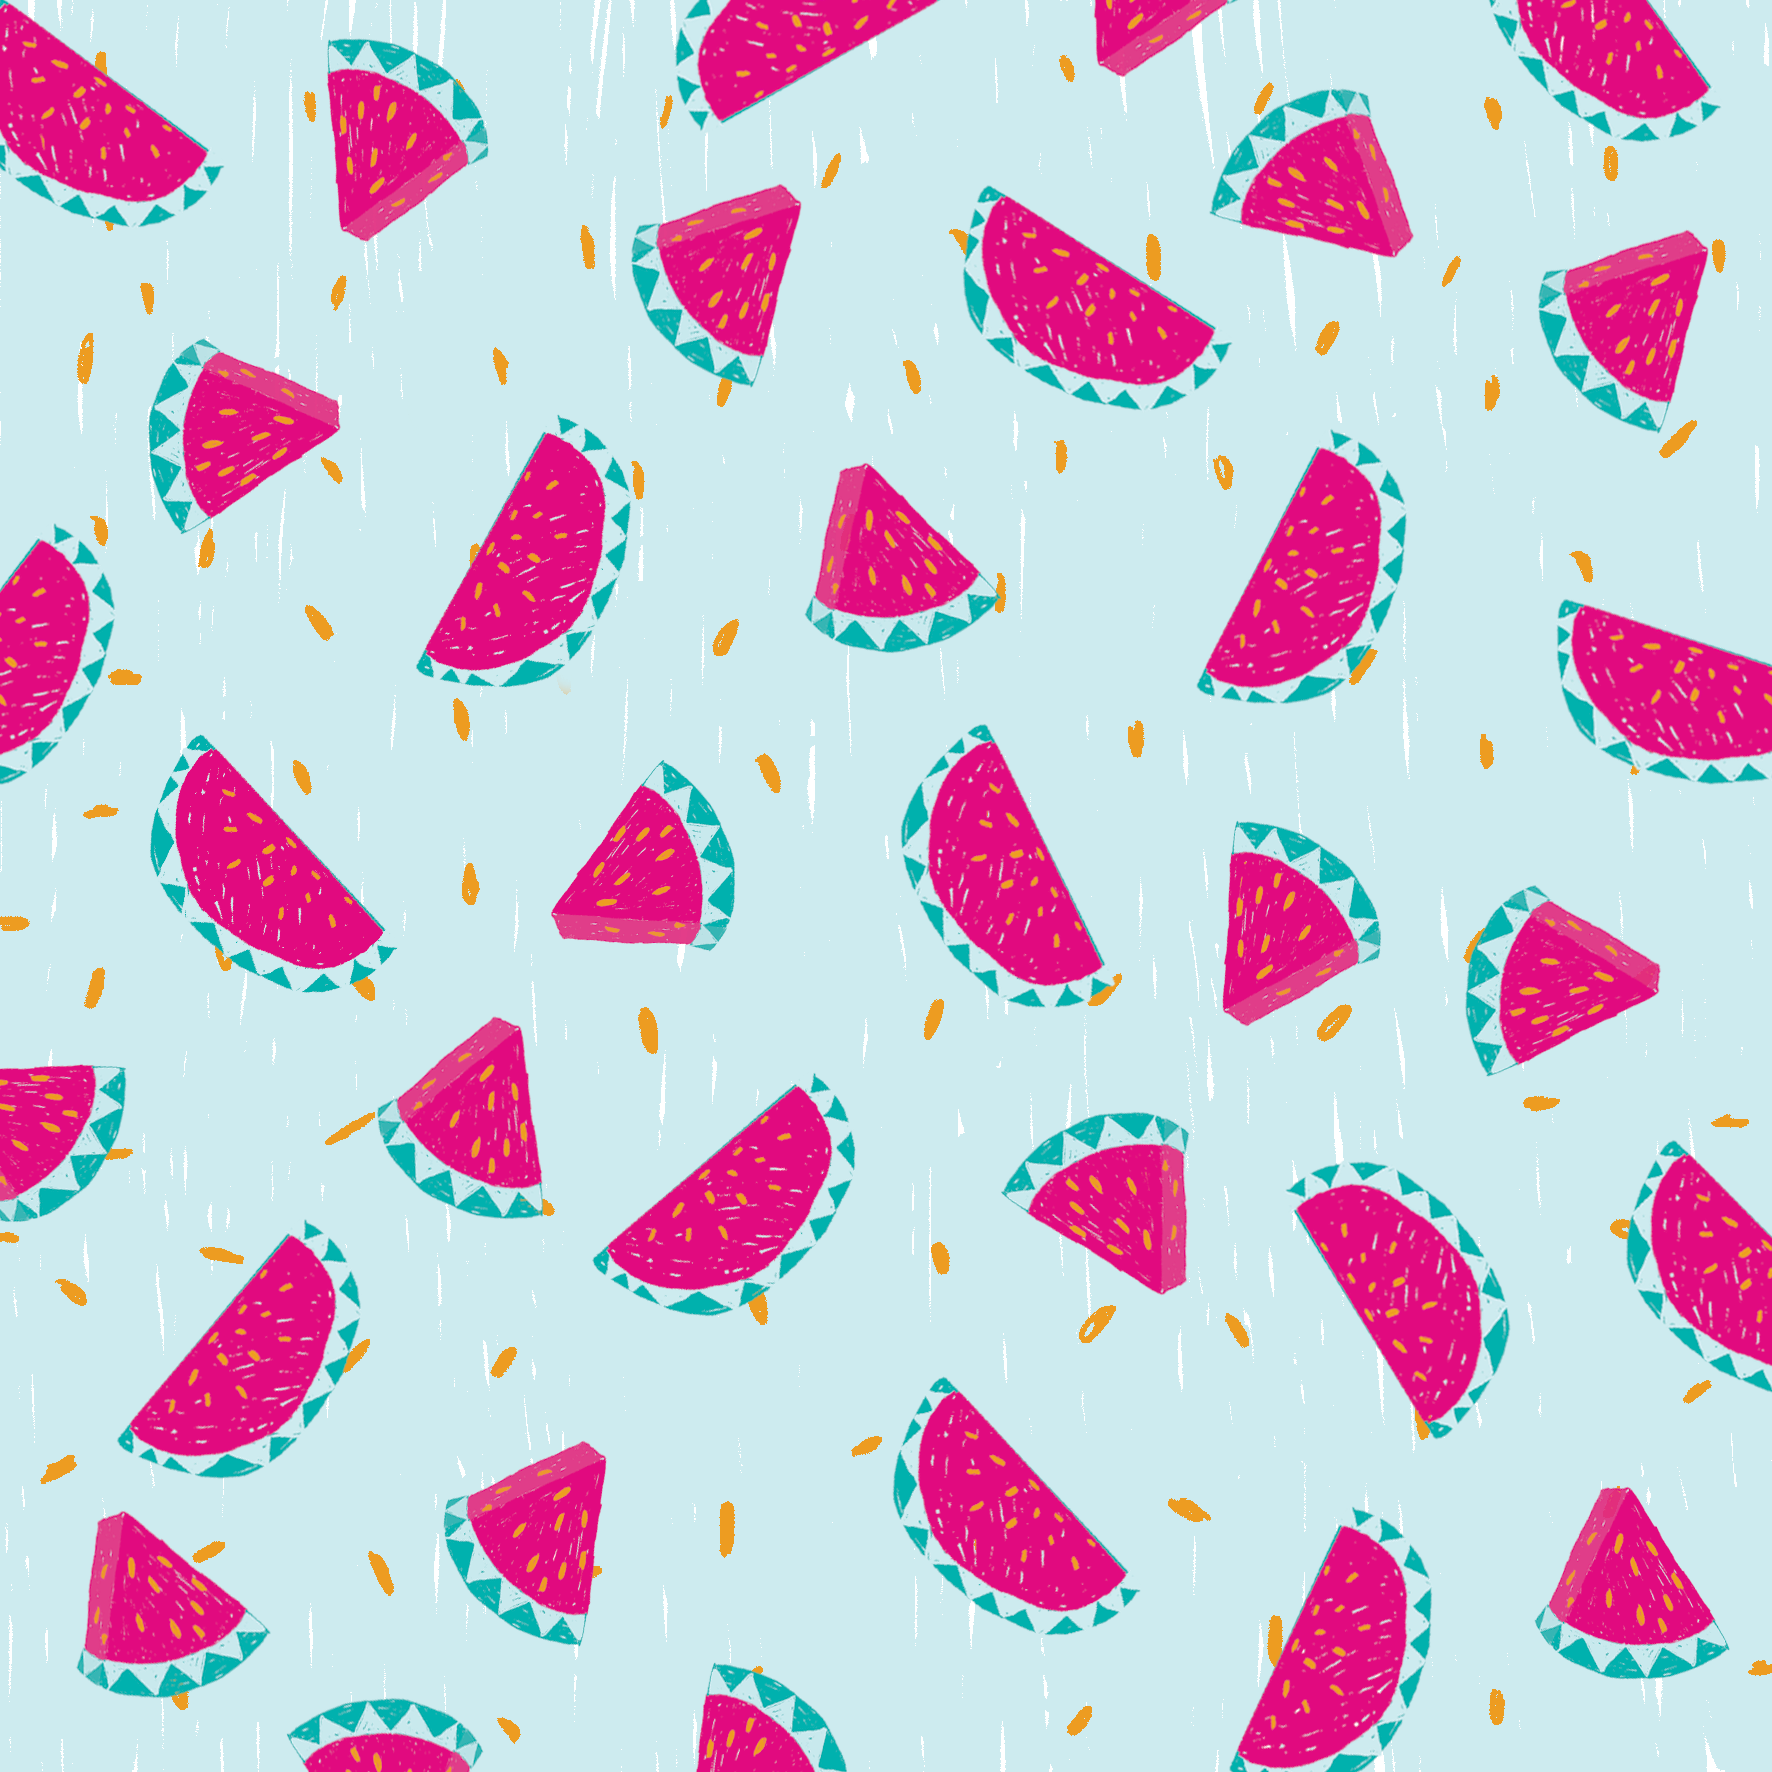 watermelon_patterns.png